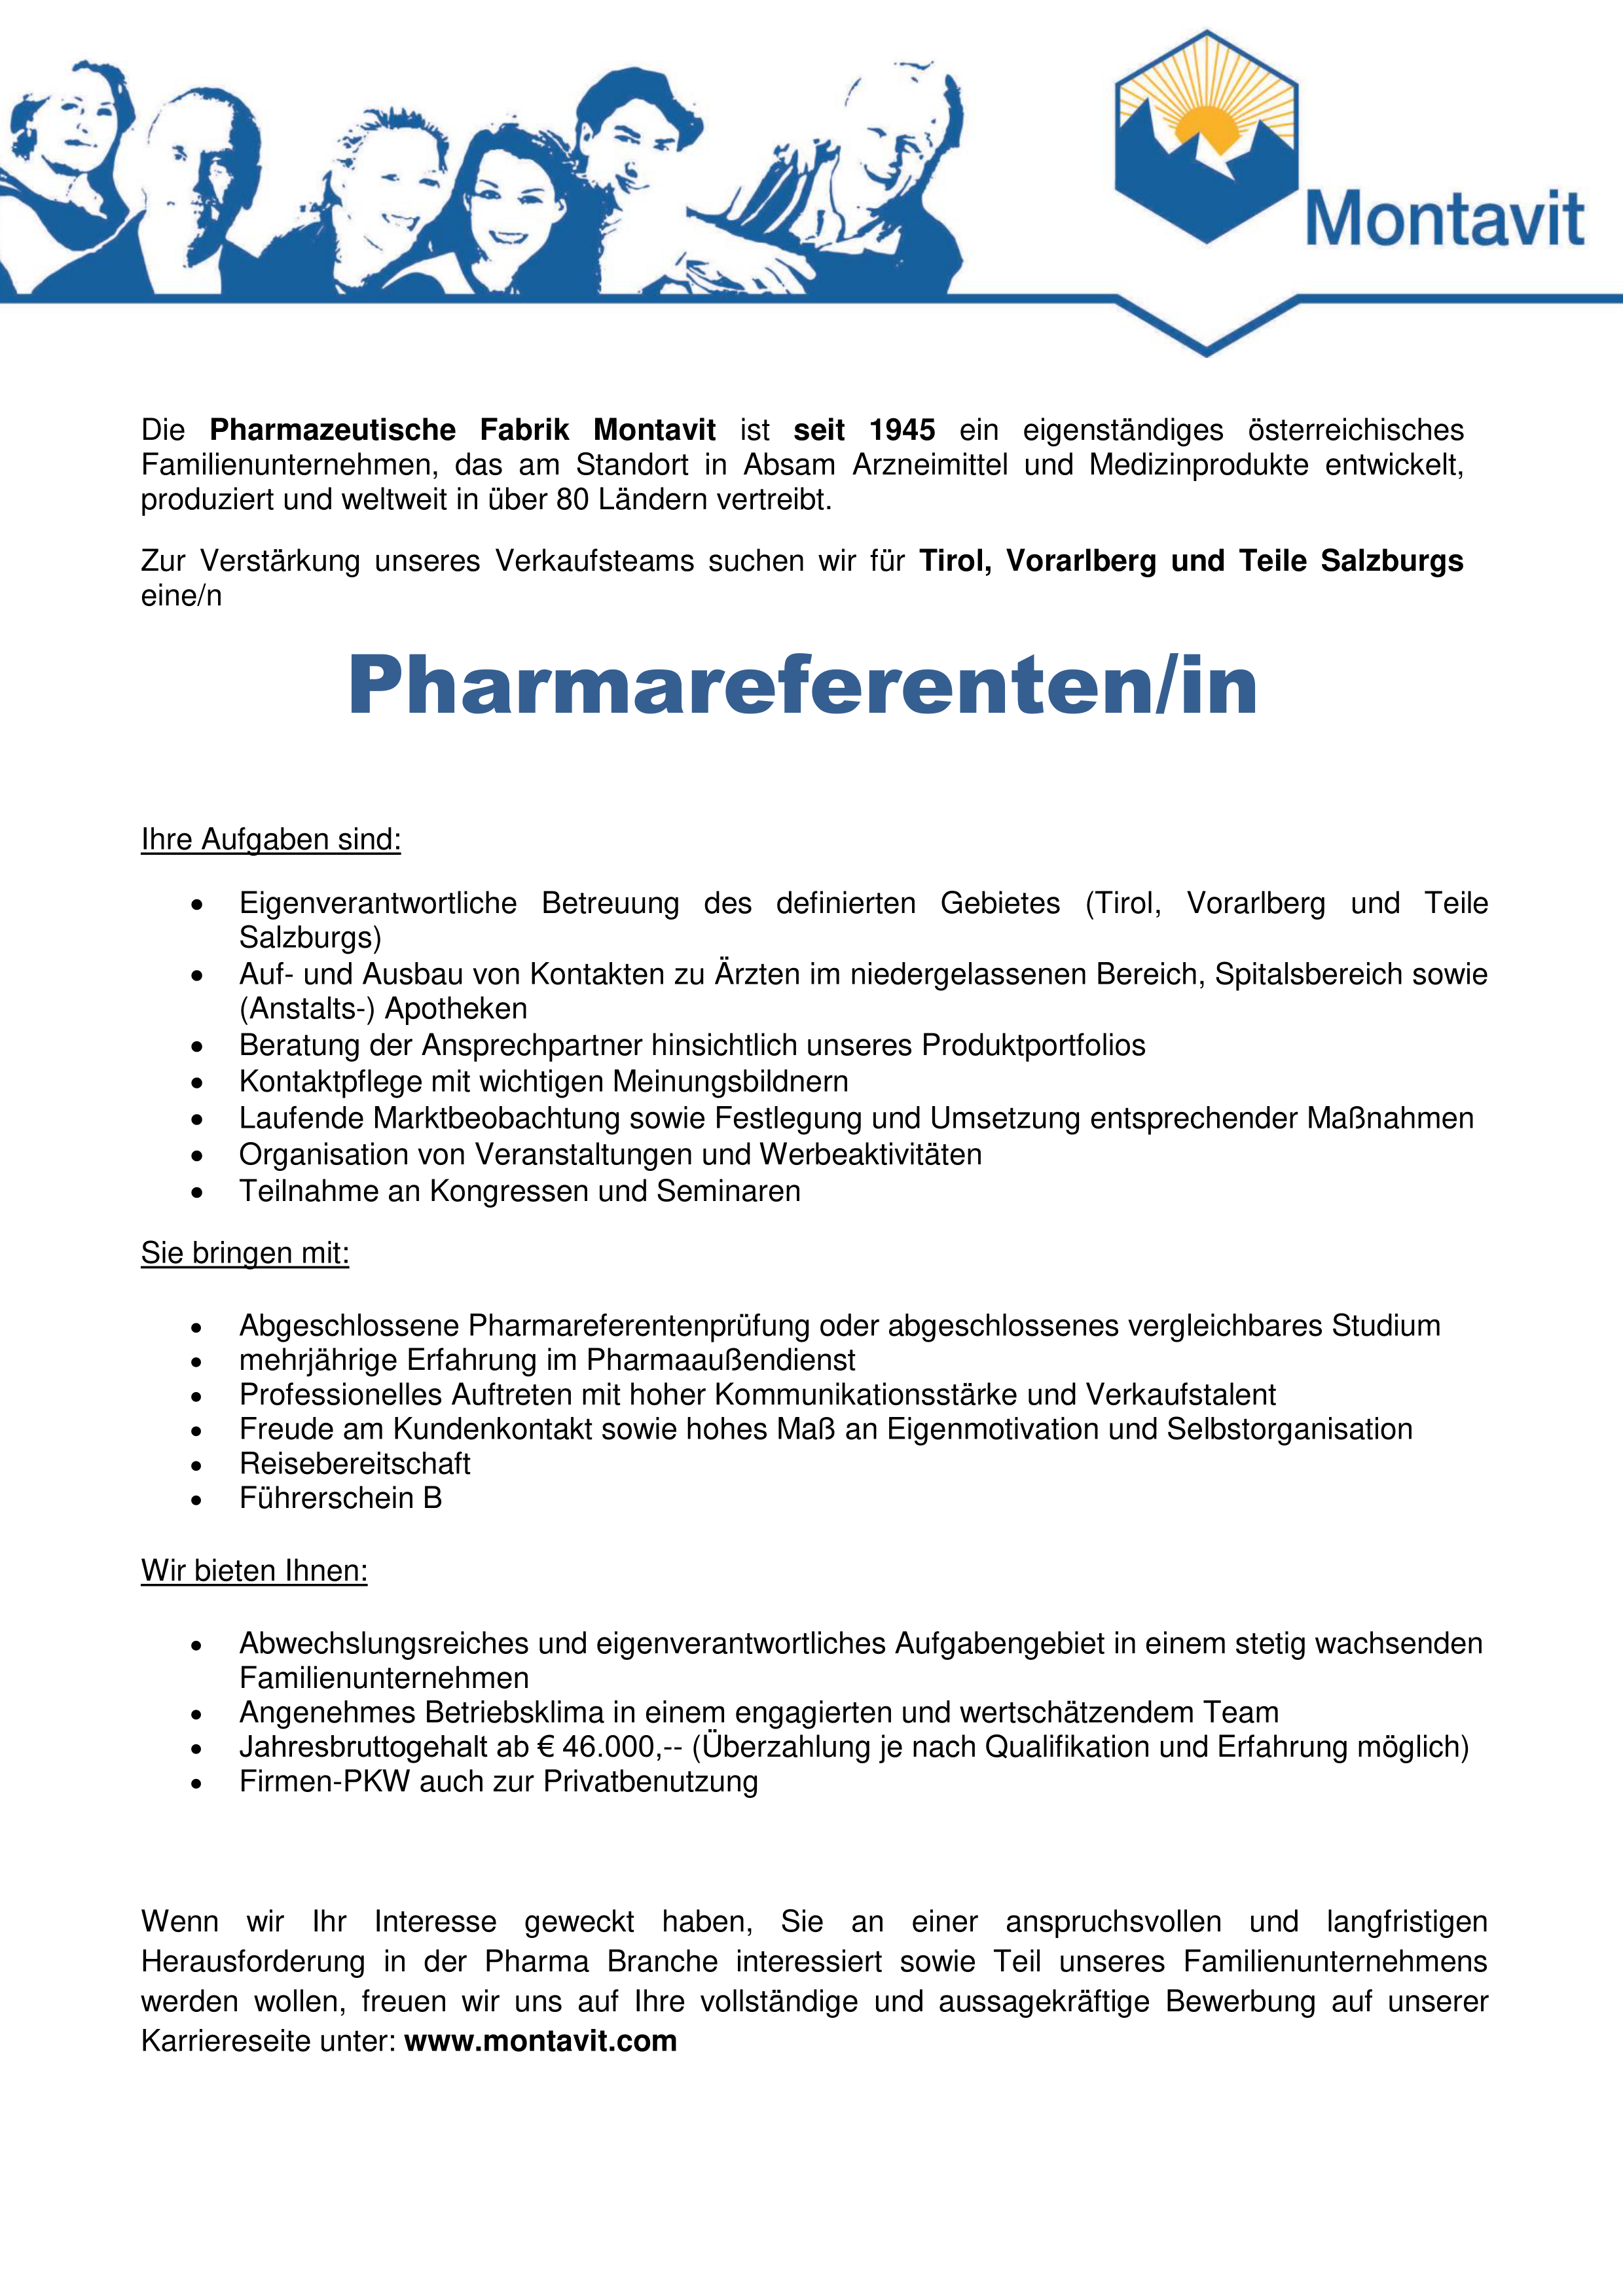 Pharmareferenten/in